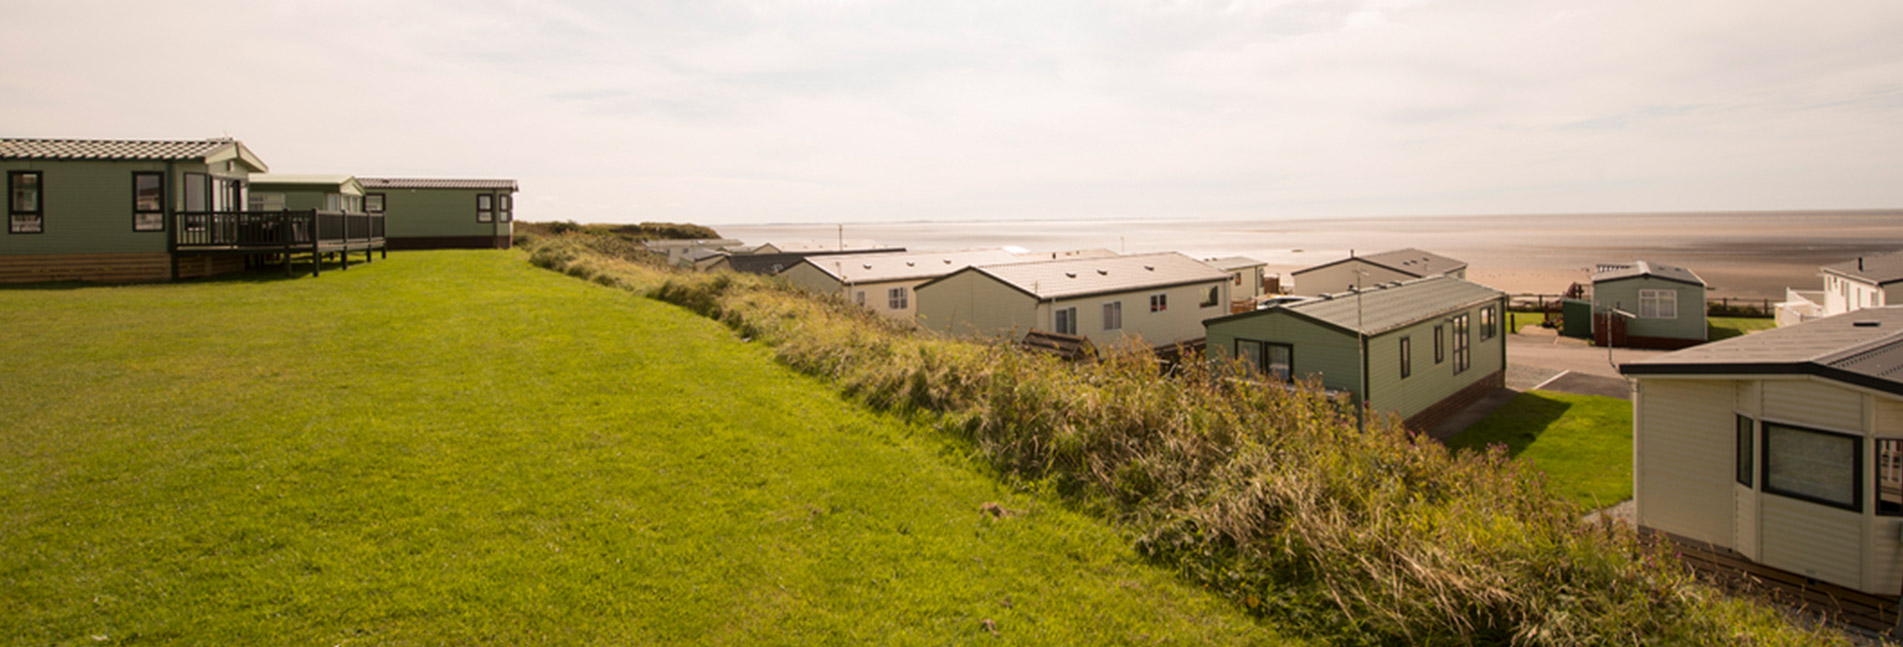 A holiday park in Lancashire overlooking the sea